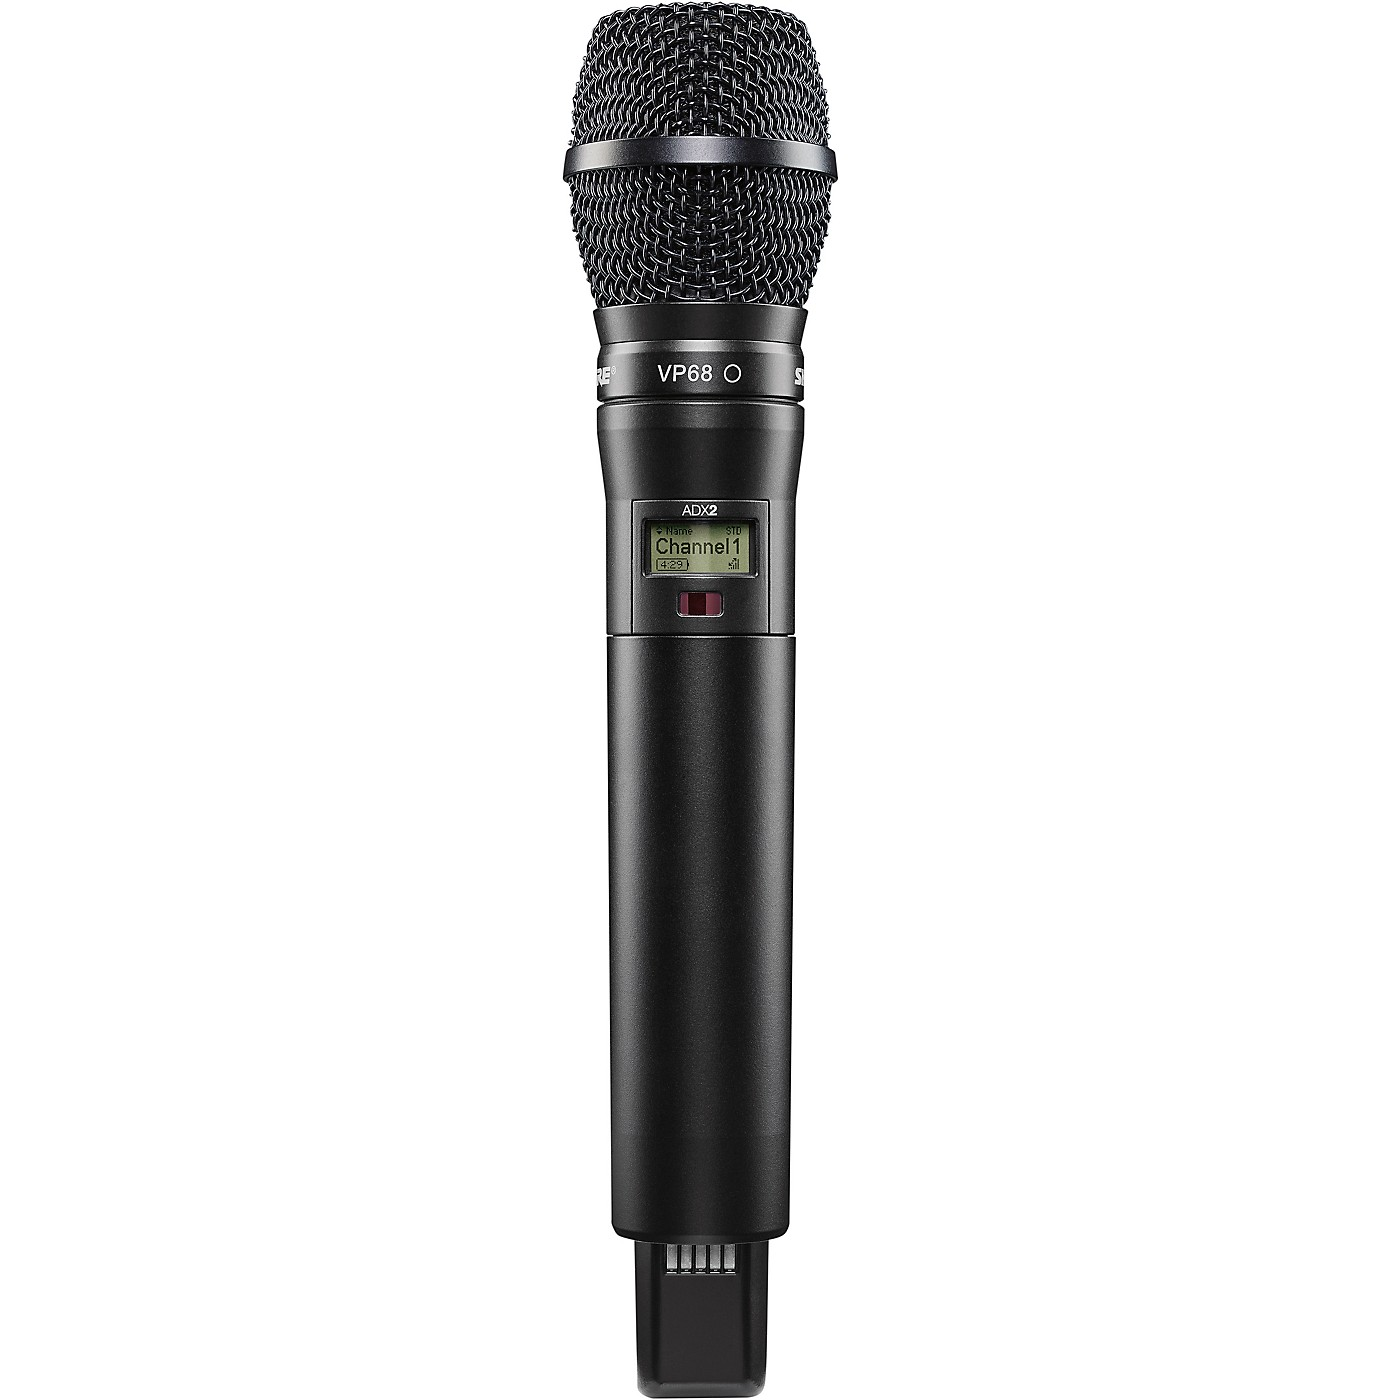 Shure Axient Digital ADX2/VP68 Wireless Handheld Microphone Transmitter With VP68 Capsule thumbnail